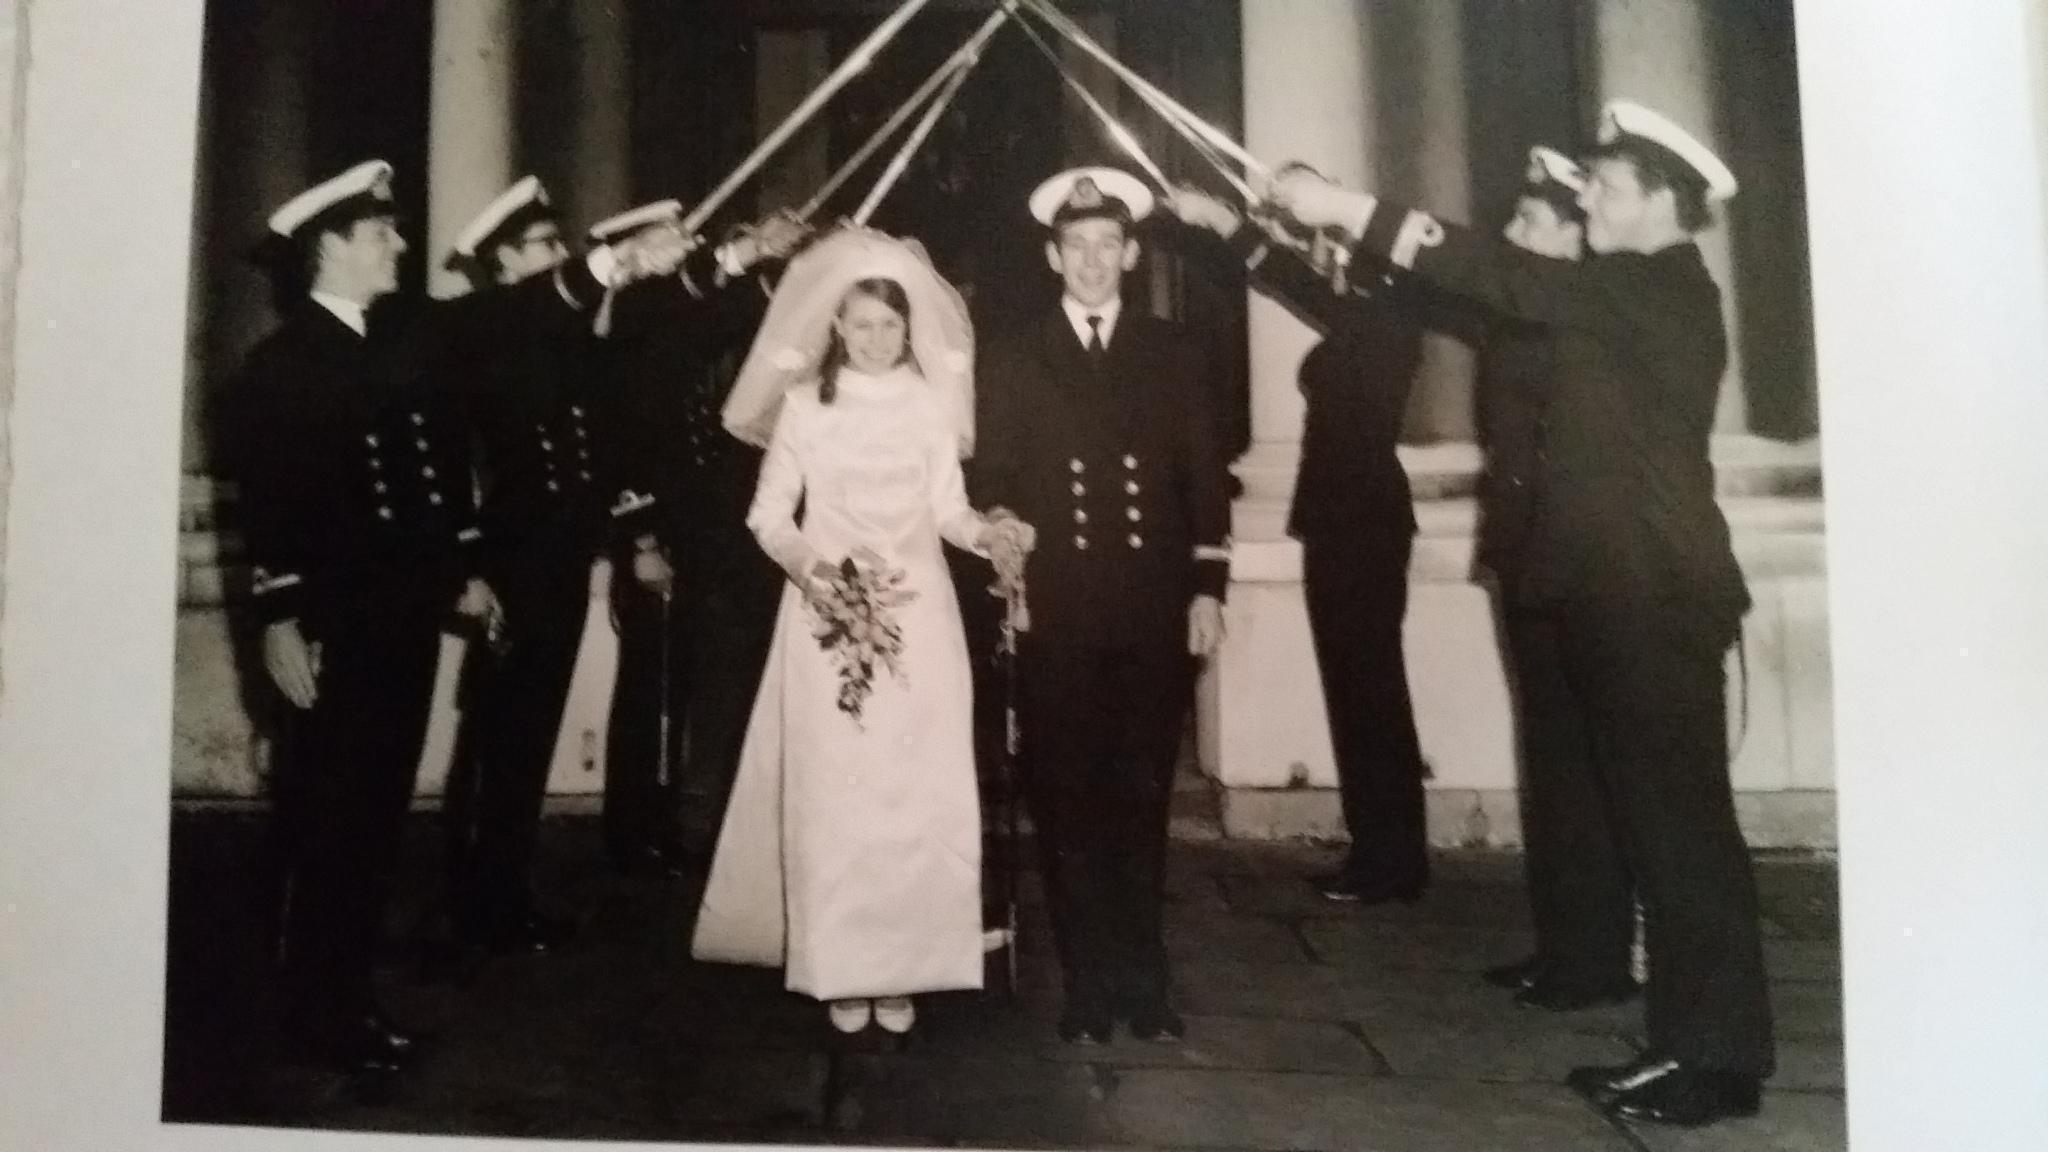 47 Years Of Marriage And 20 Years Aboard